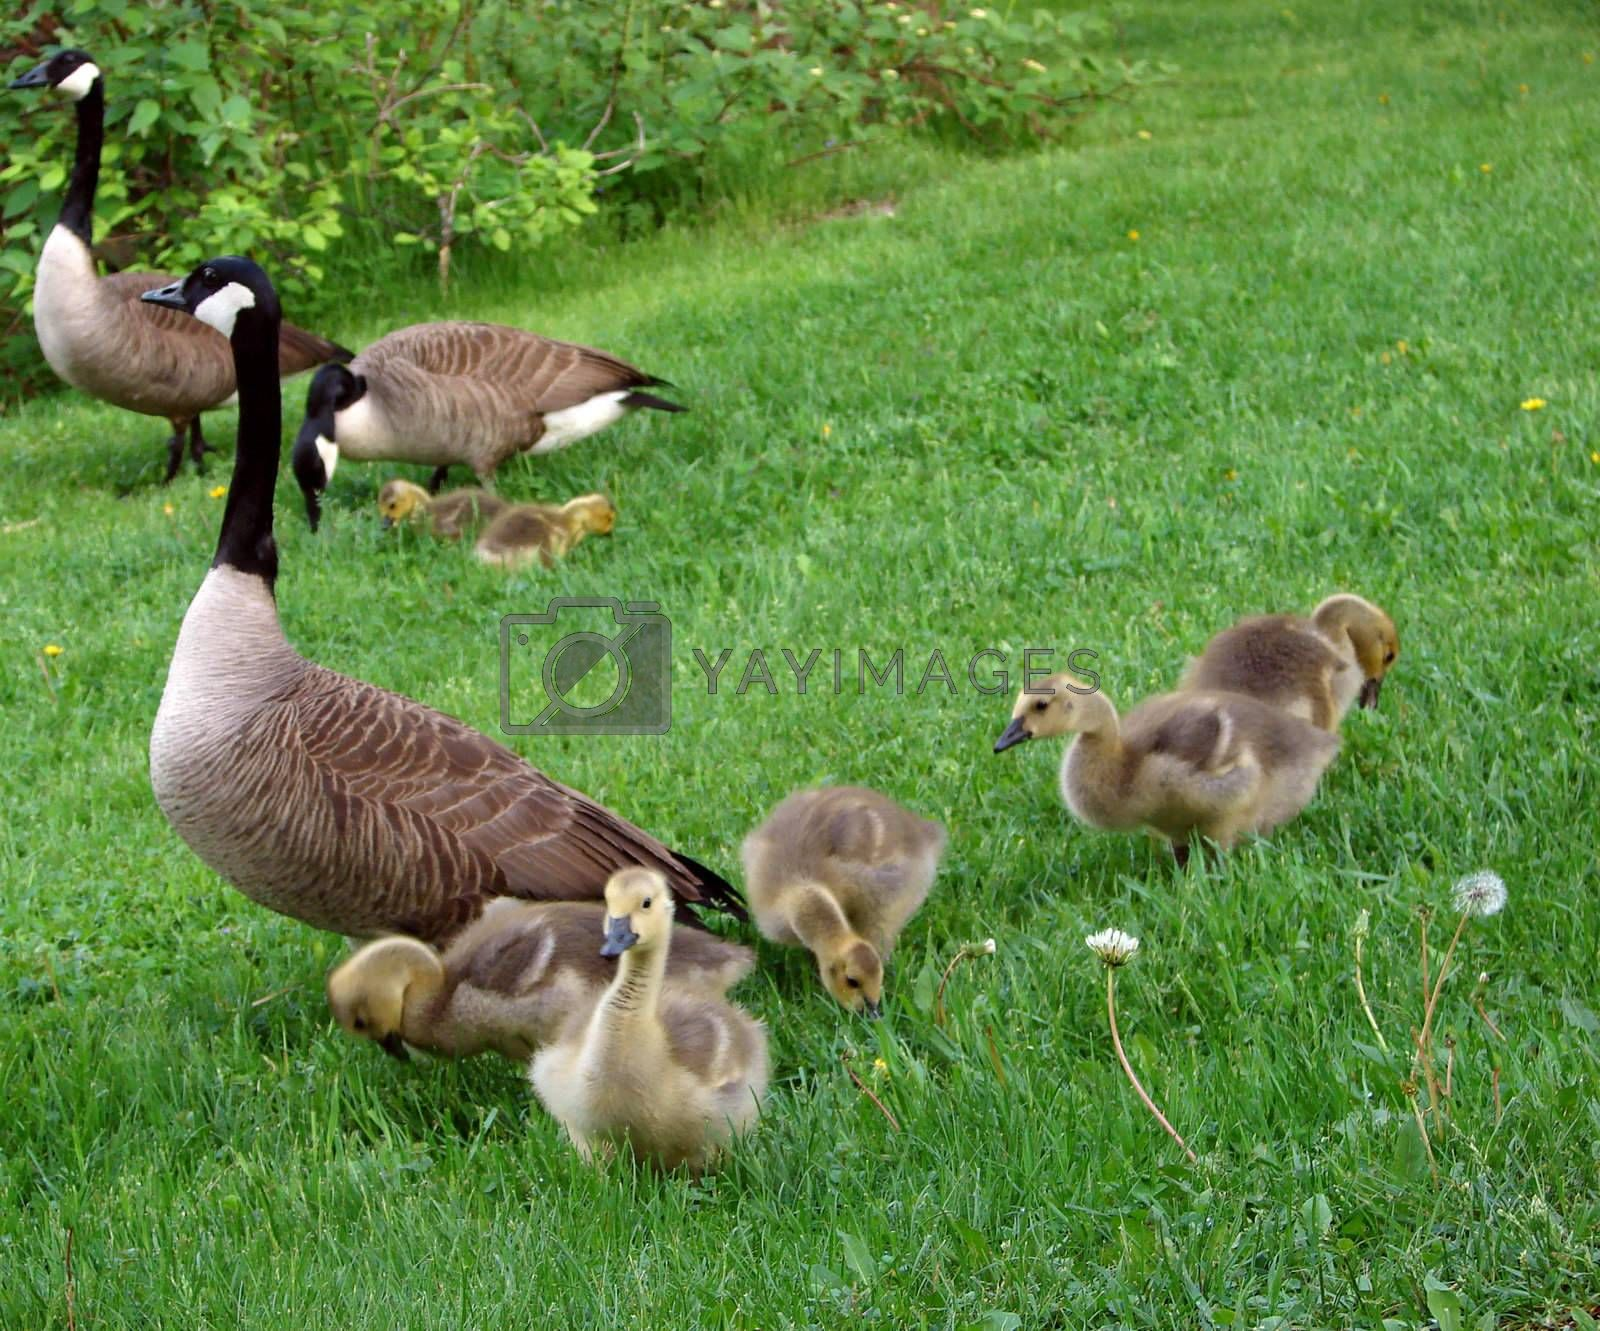 Geese and babies by Thorvis